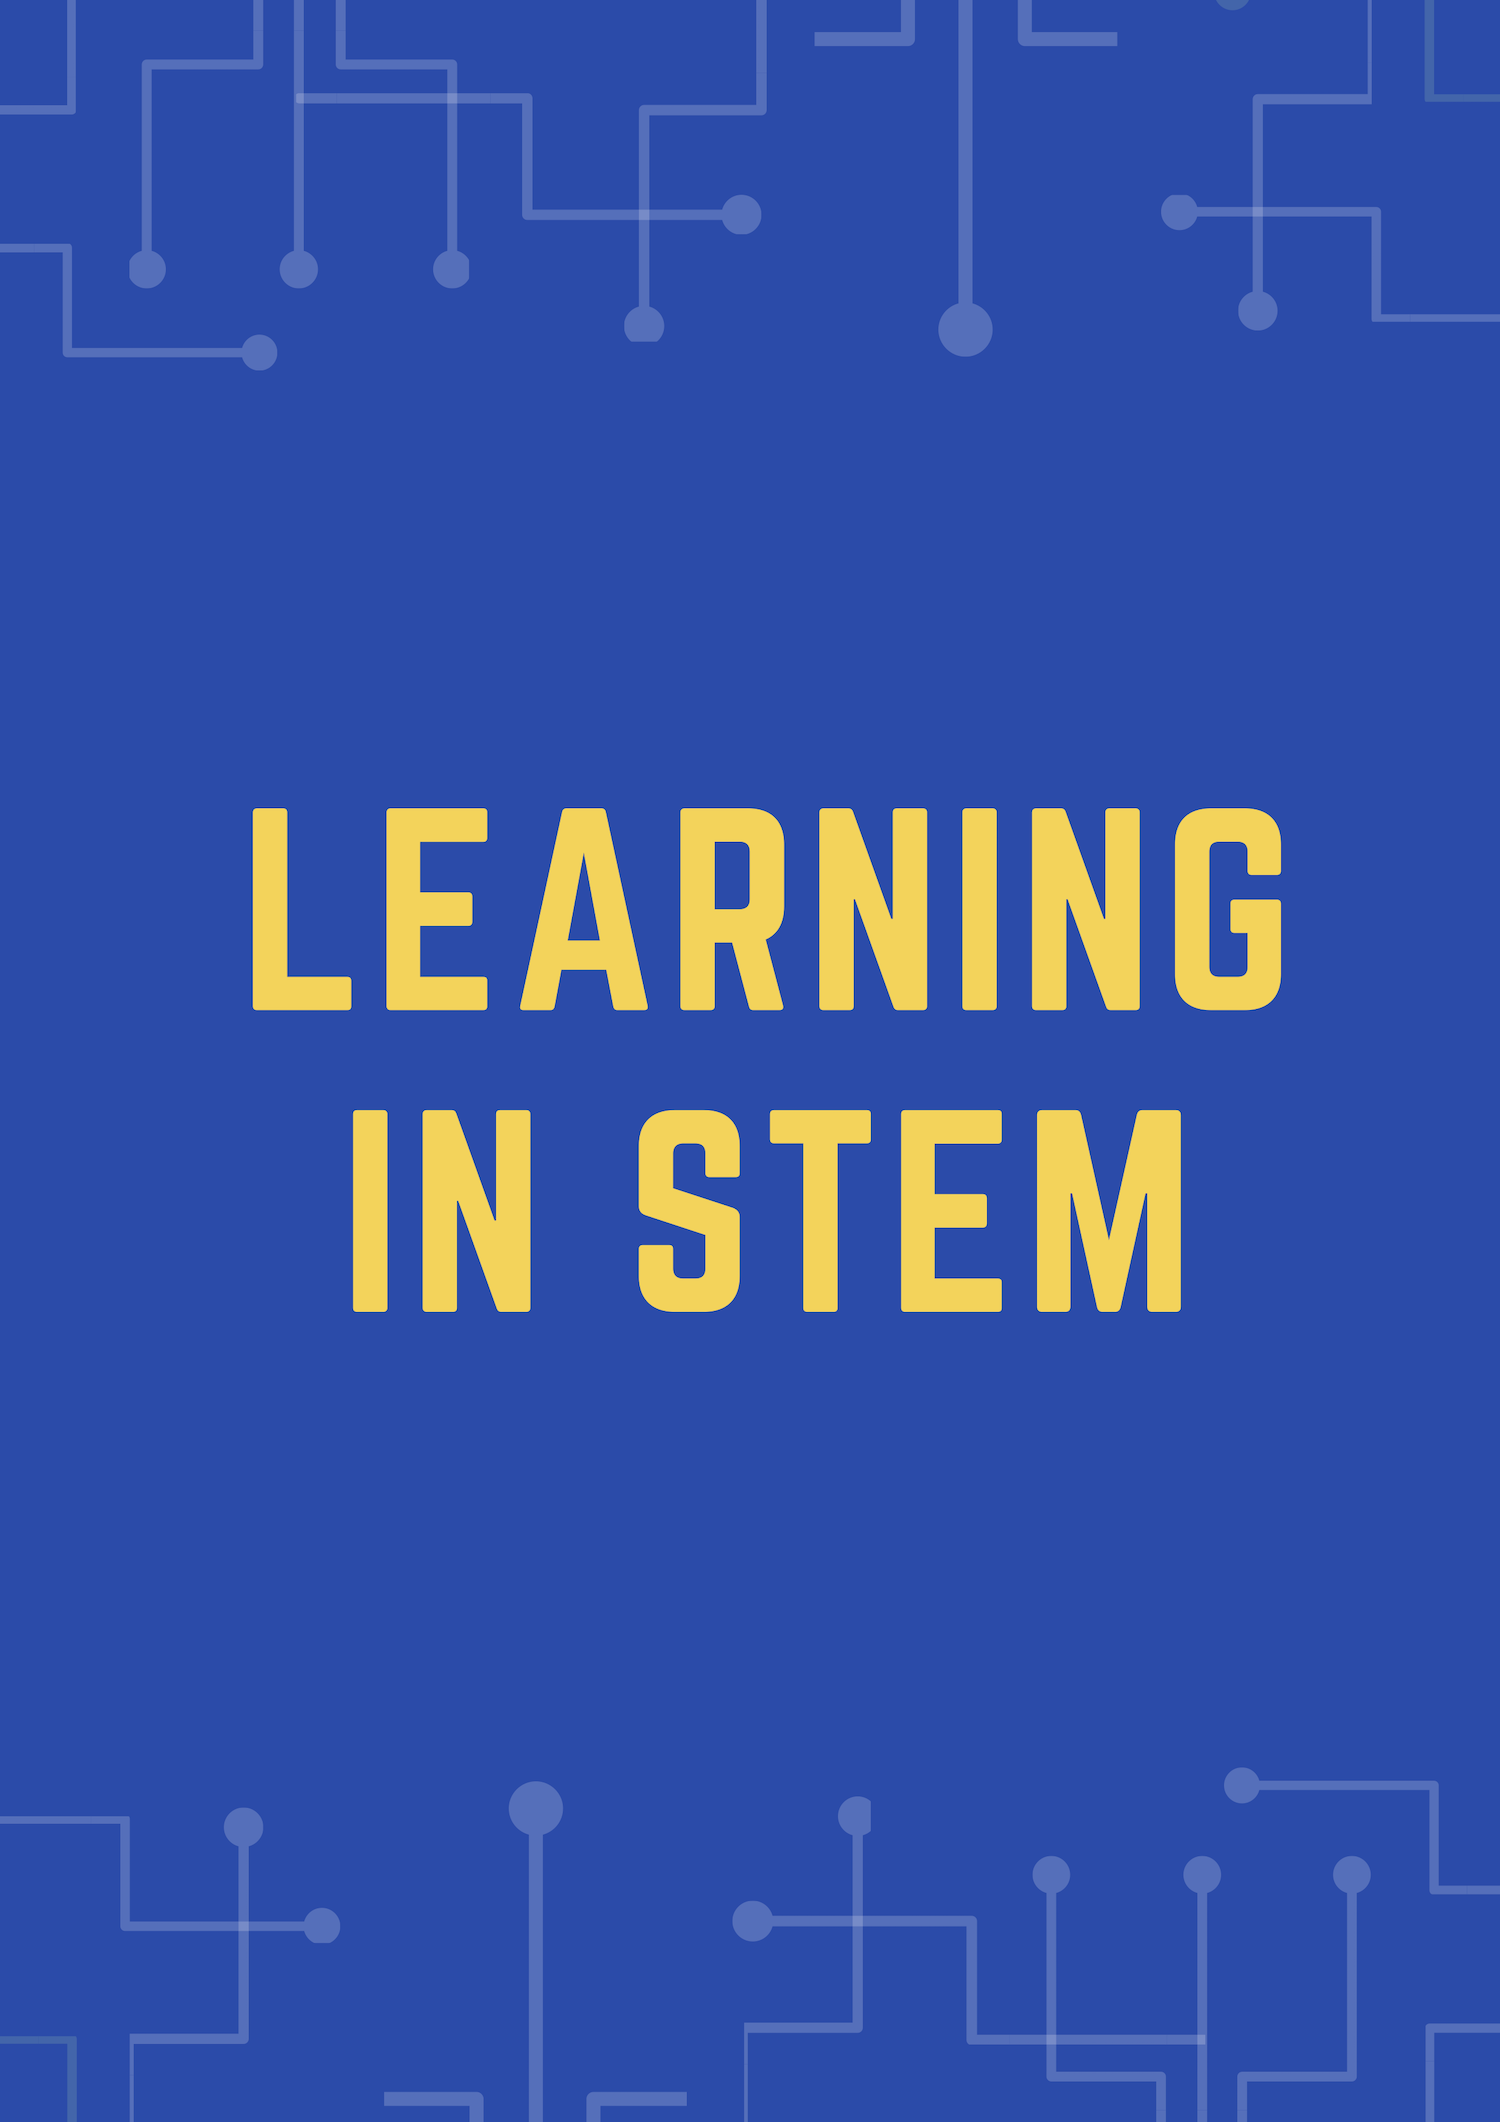 STEM Teaching Posters